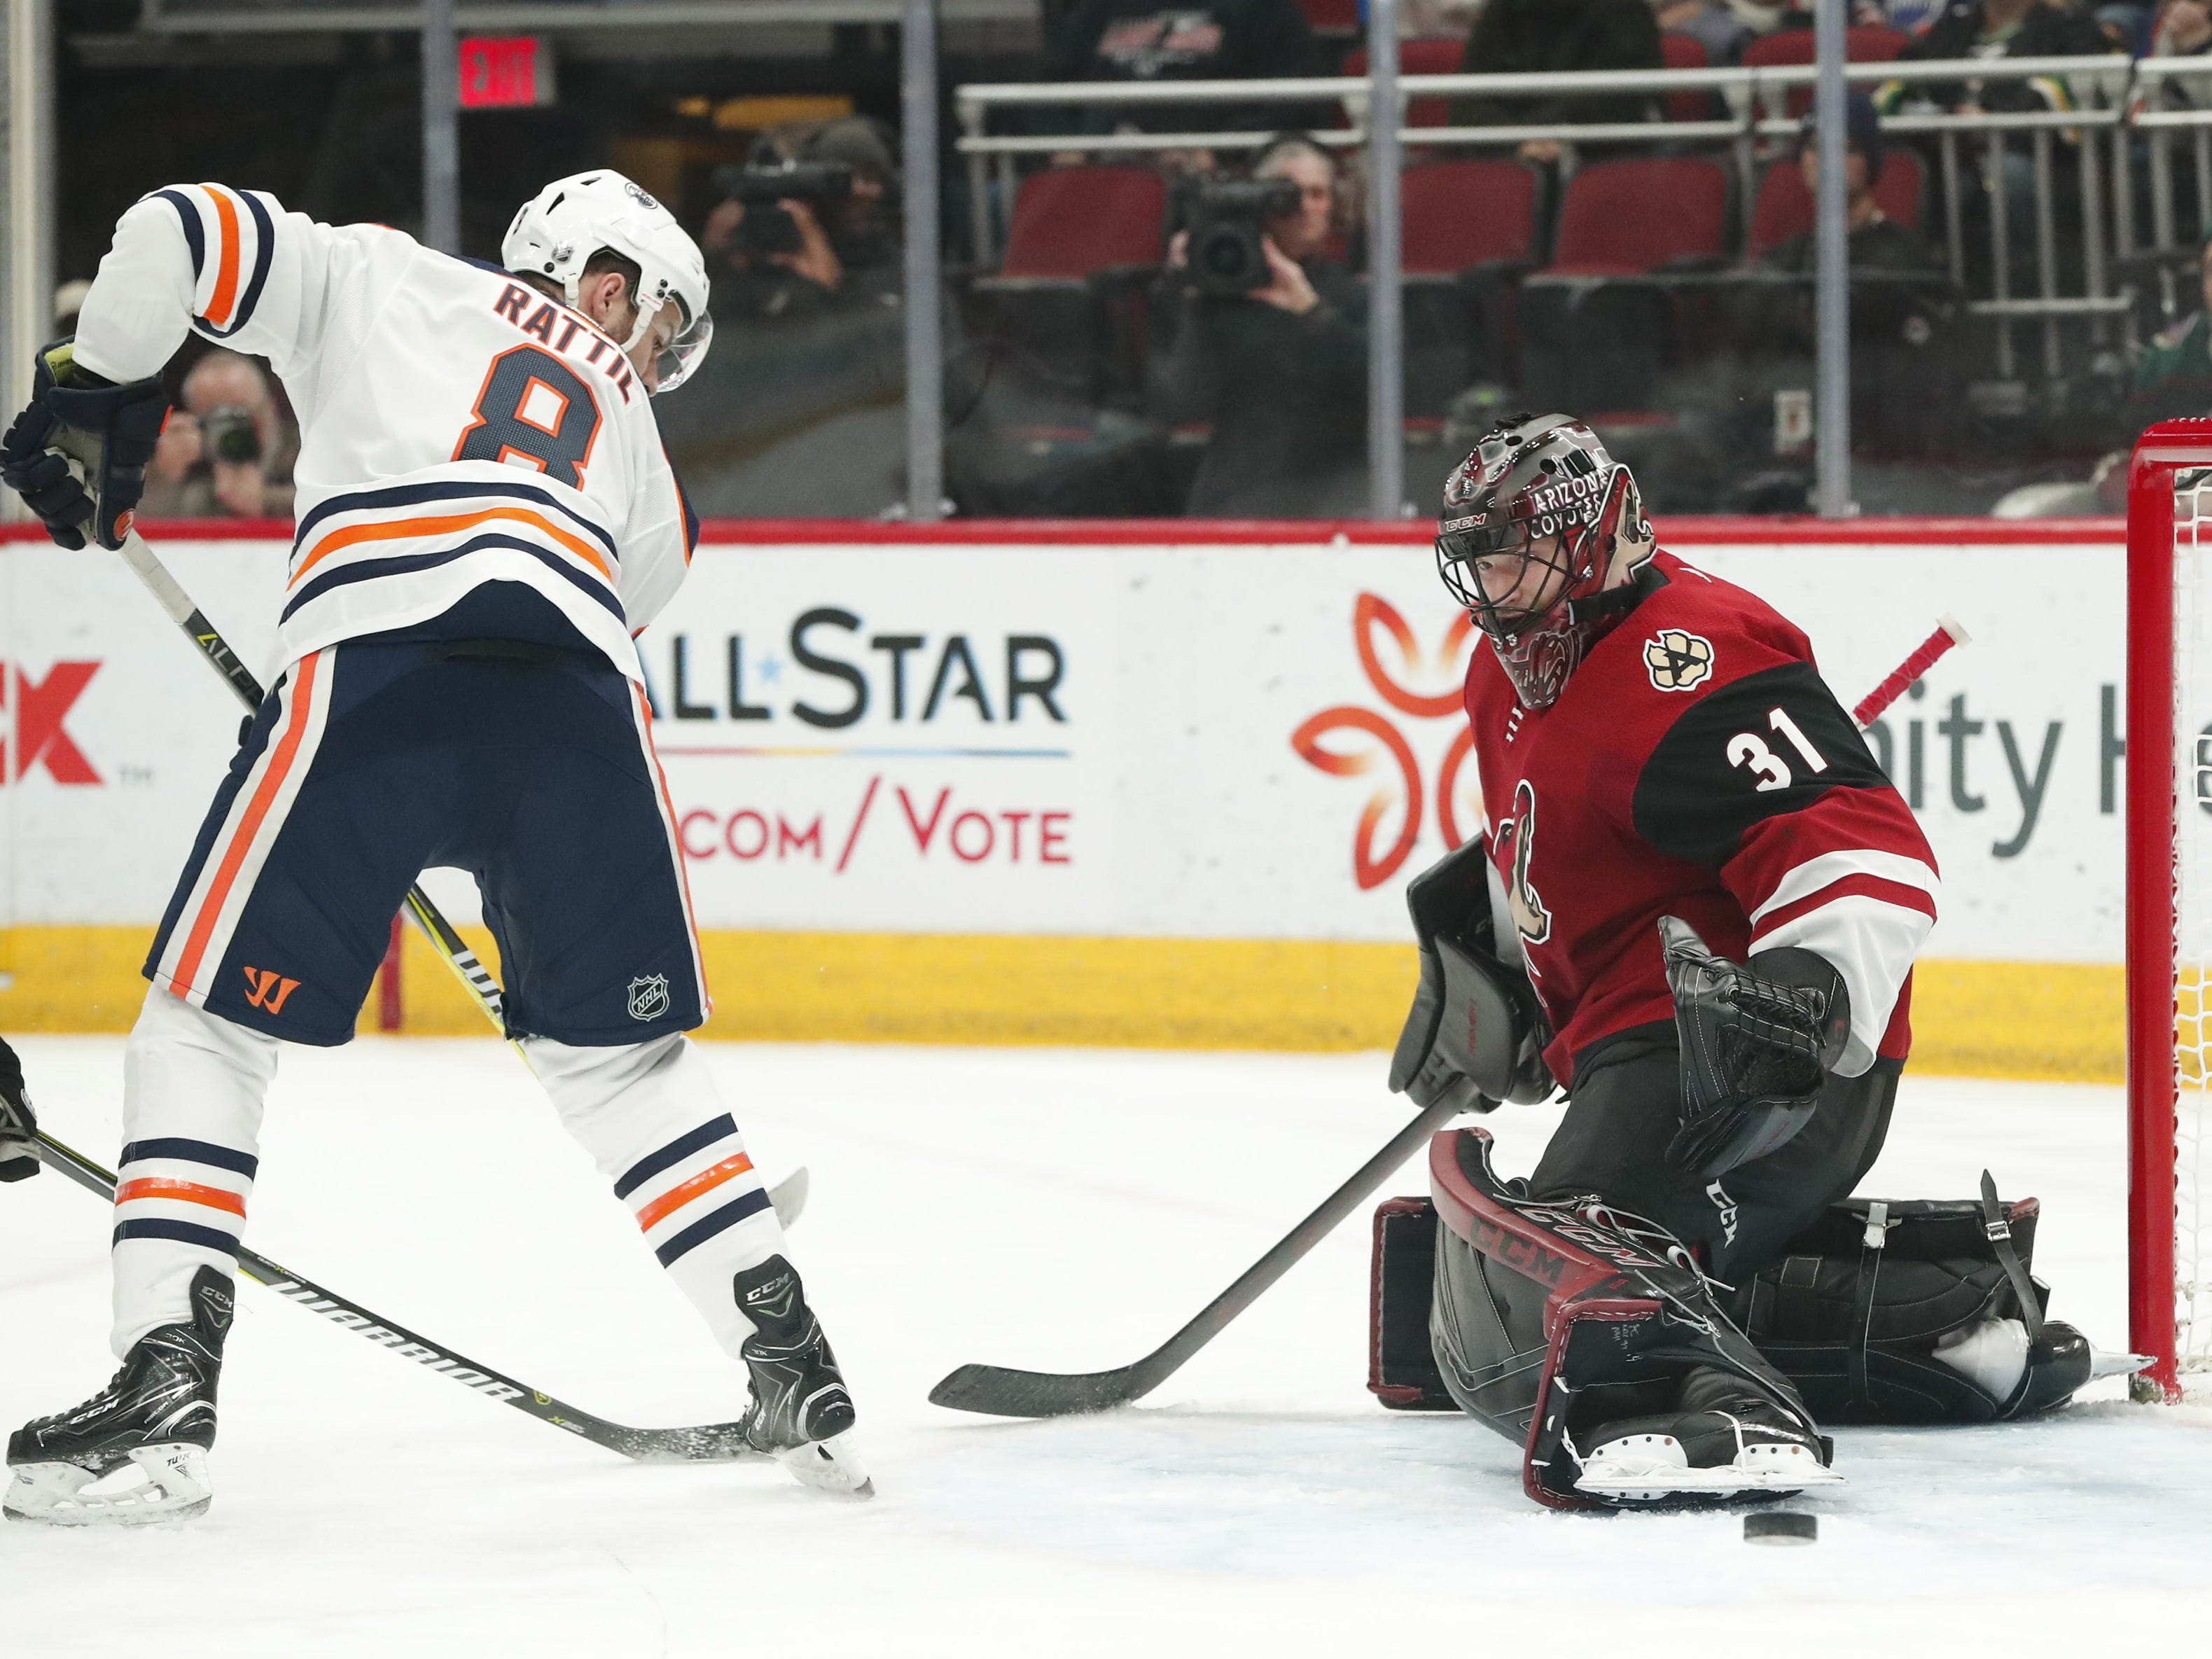 Arizona Coyotes goaltender Adin Hill (31) makes a save off a deflection by Edmonton Oilers right wing Ty Rattie (8) during the first period in Glendale January 2, 2019.